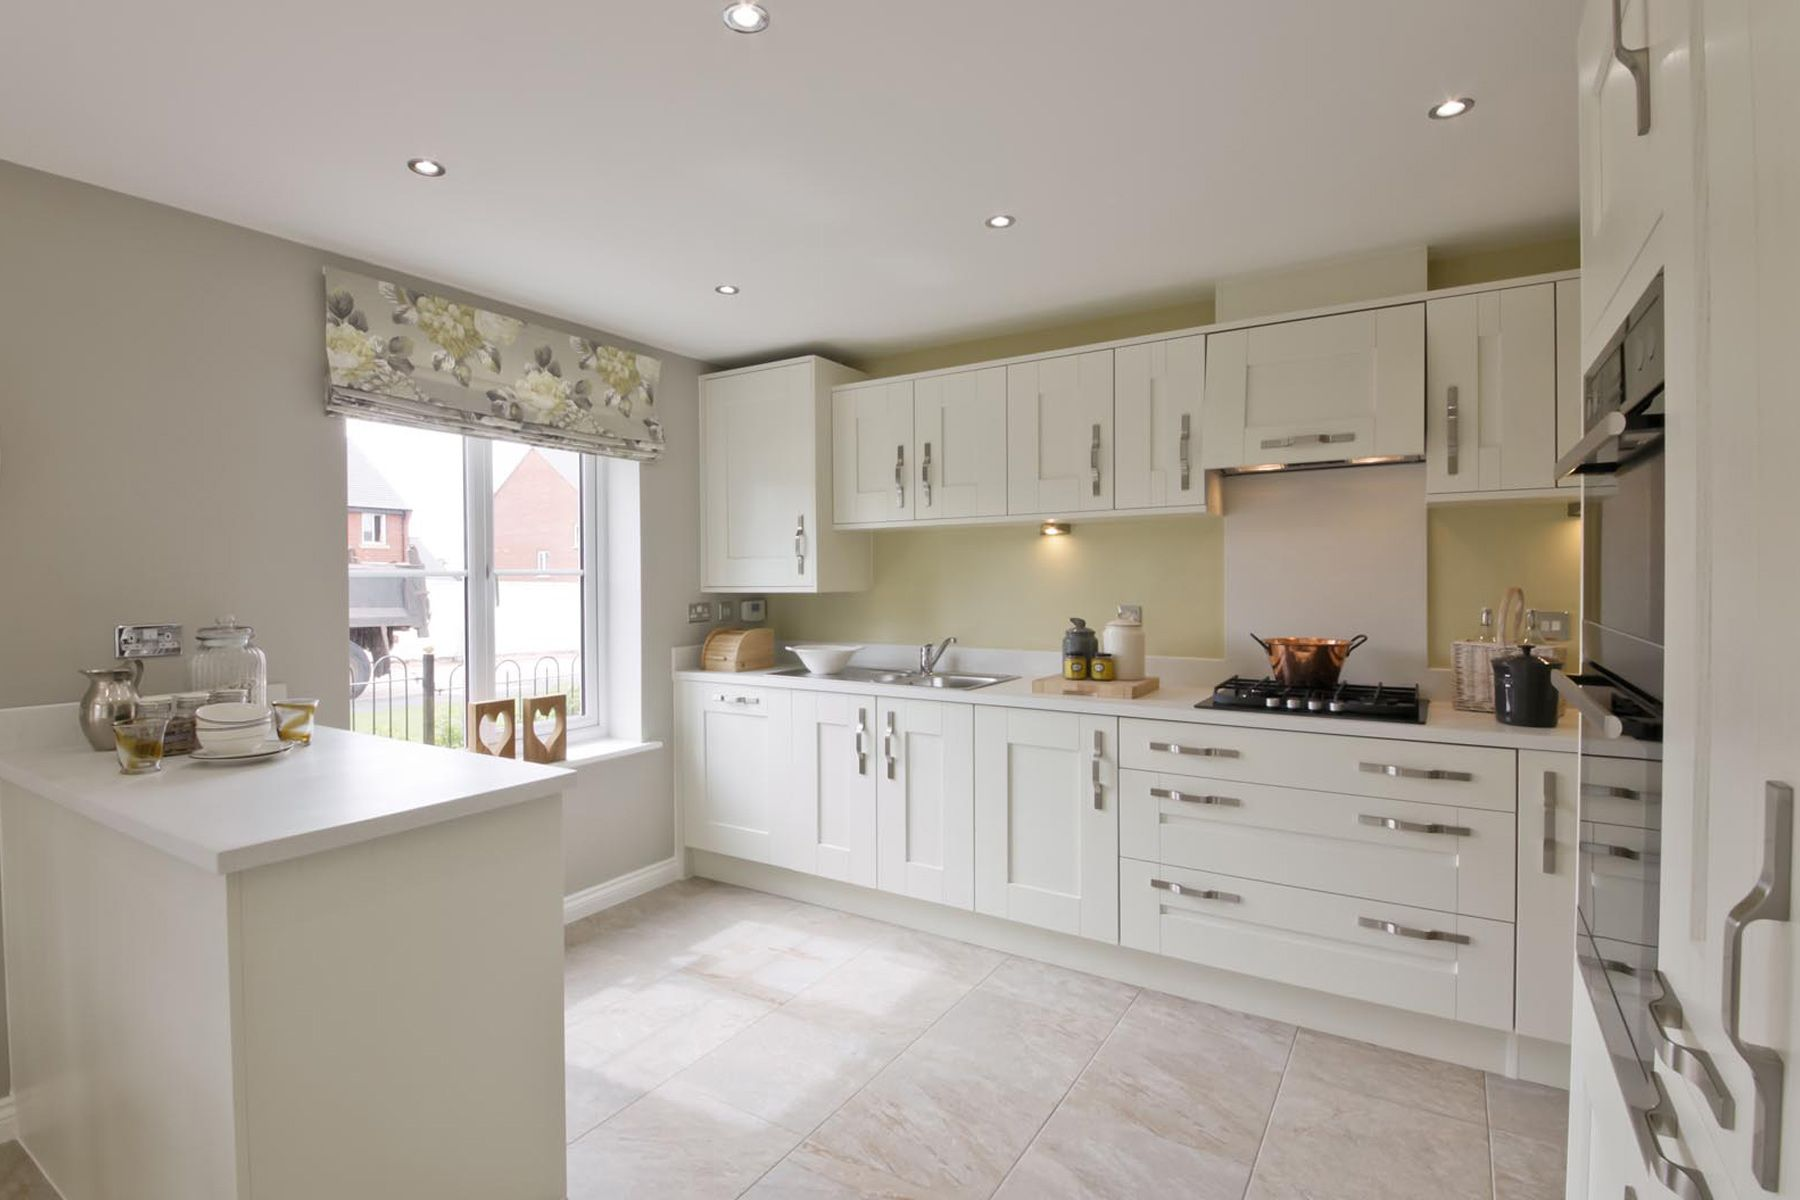 TW Exeter - Mountbatten Mews - Trusdale example kitchen